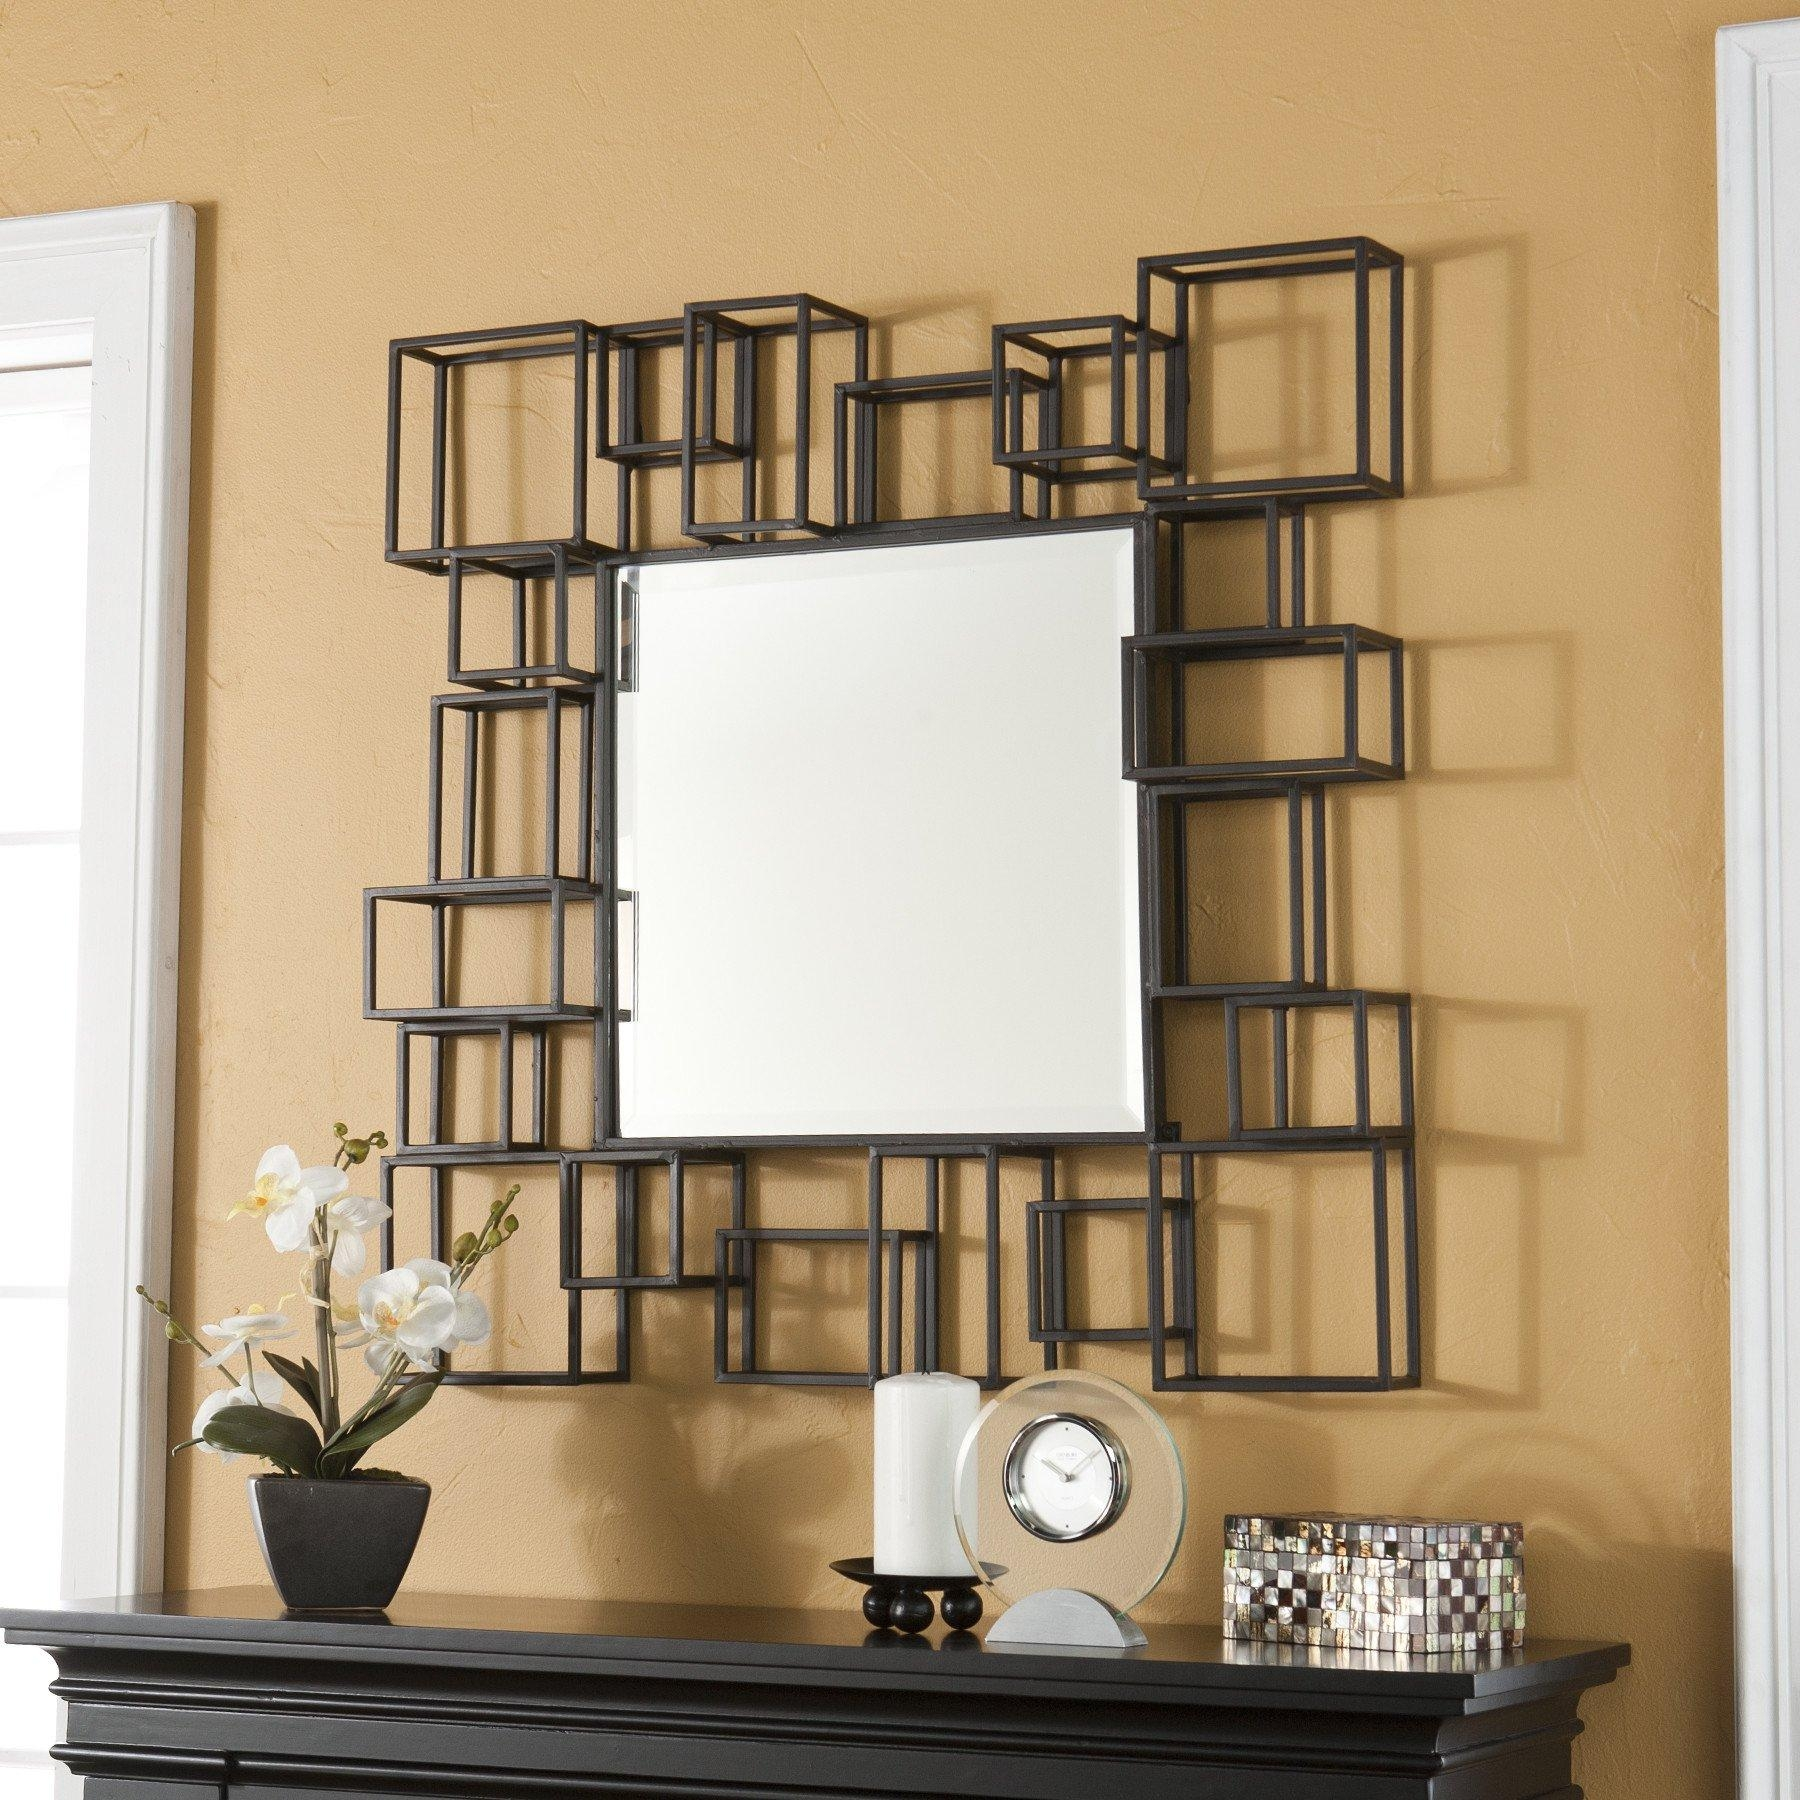 23 Fancy Decorative Mirror Designs In Buy Art Deco Mirror (Image 2 of 20)